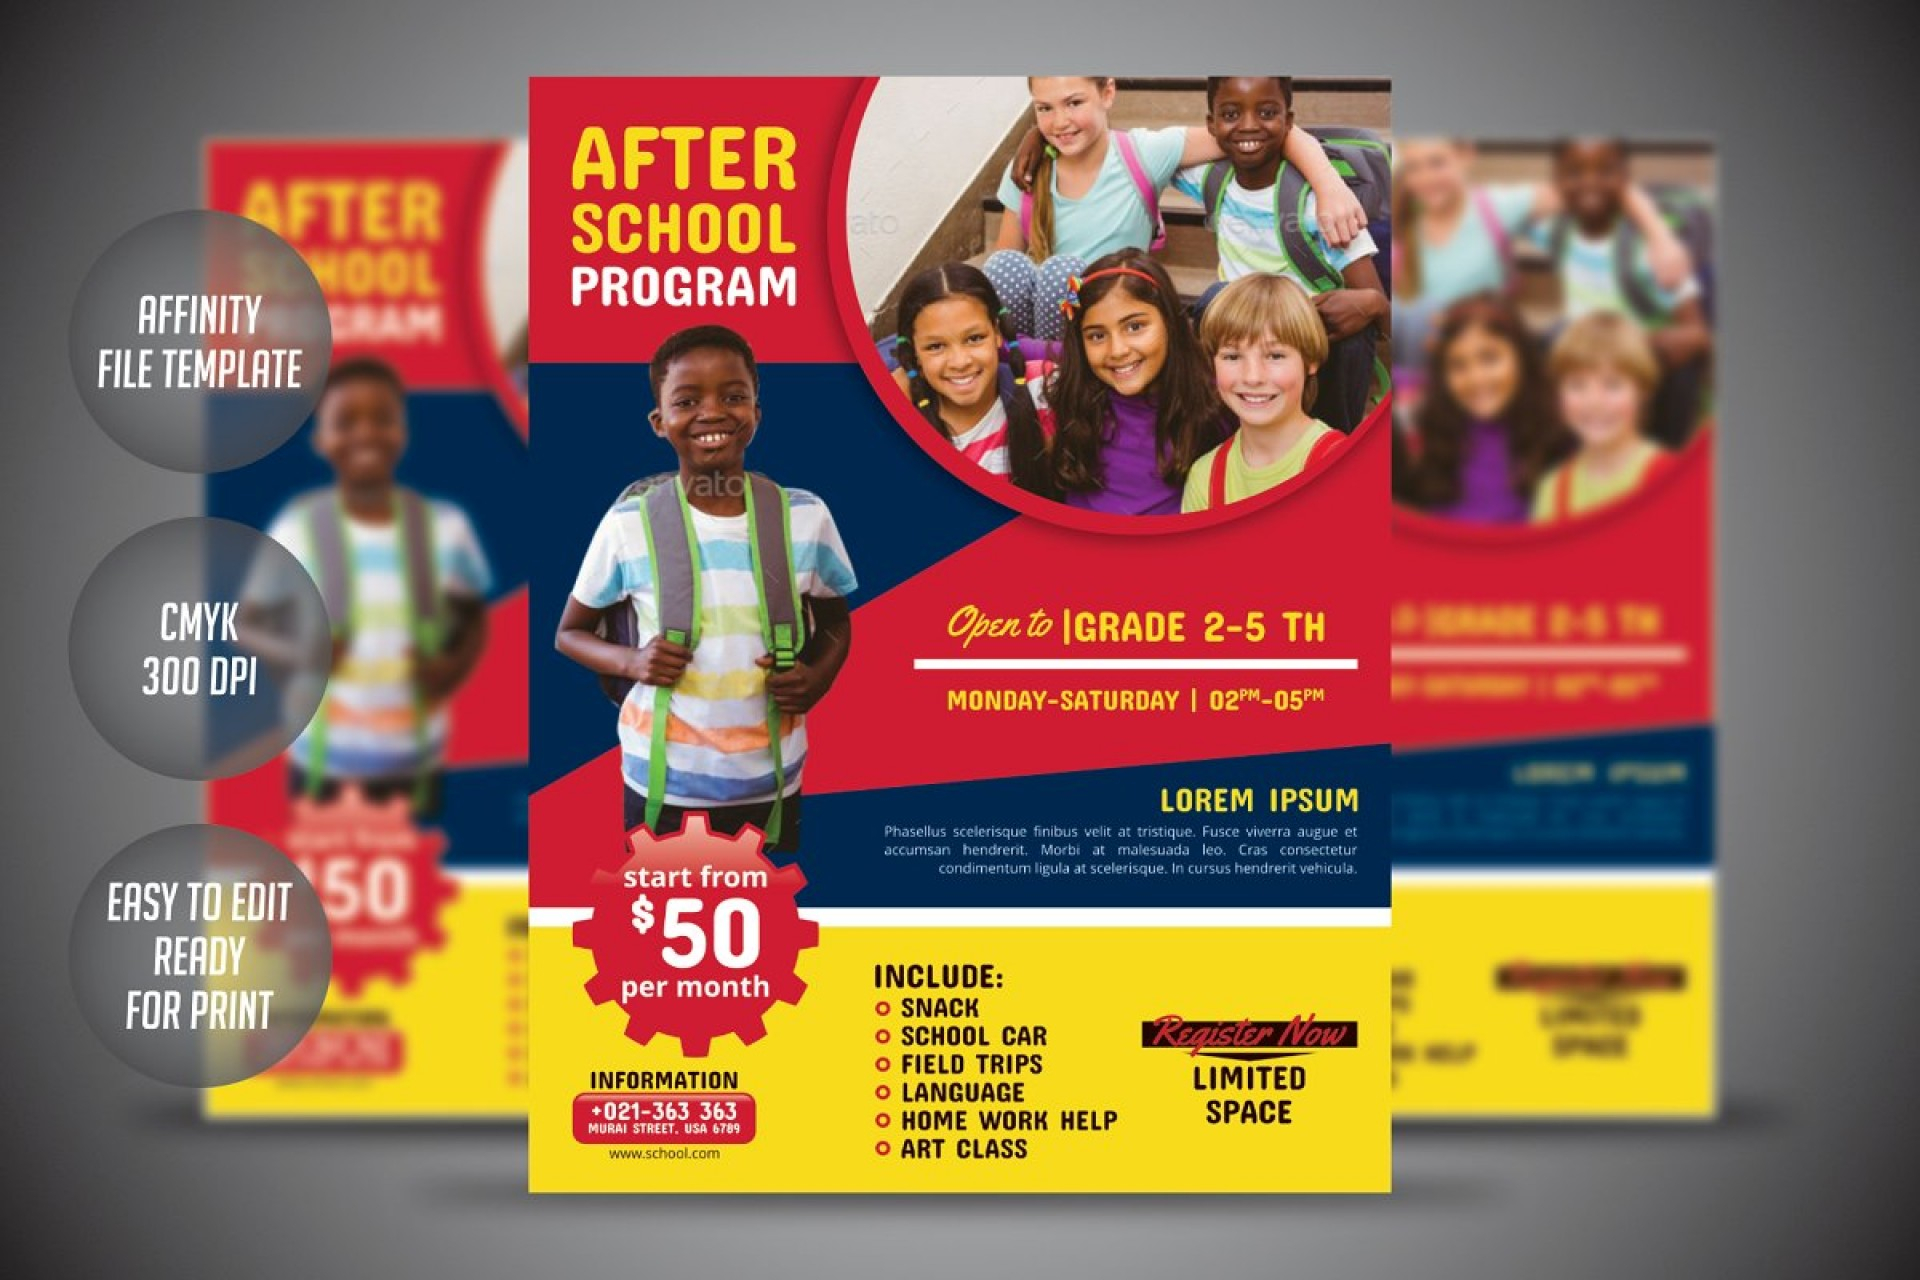 002 School Flyer Template Free Education Templates Unusual Pertaining To Free Education Flyer Templates